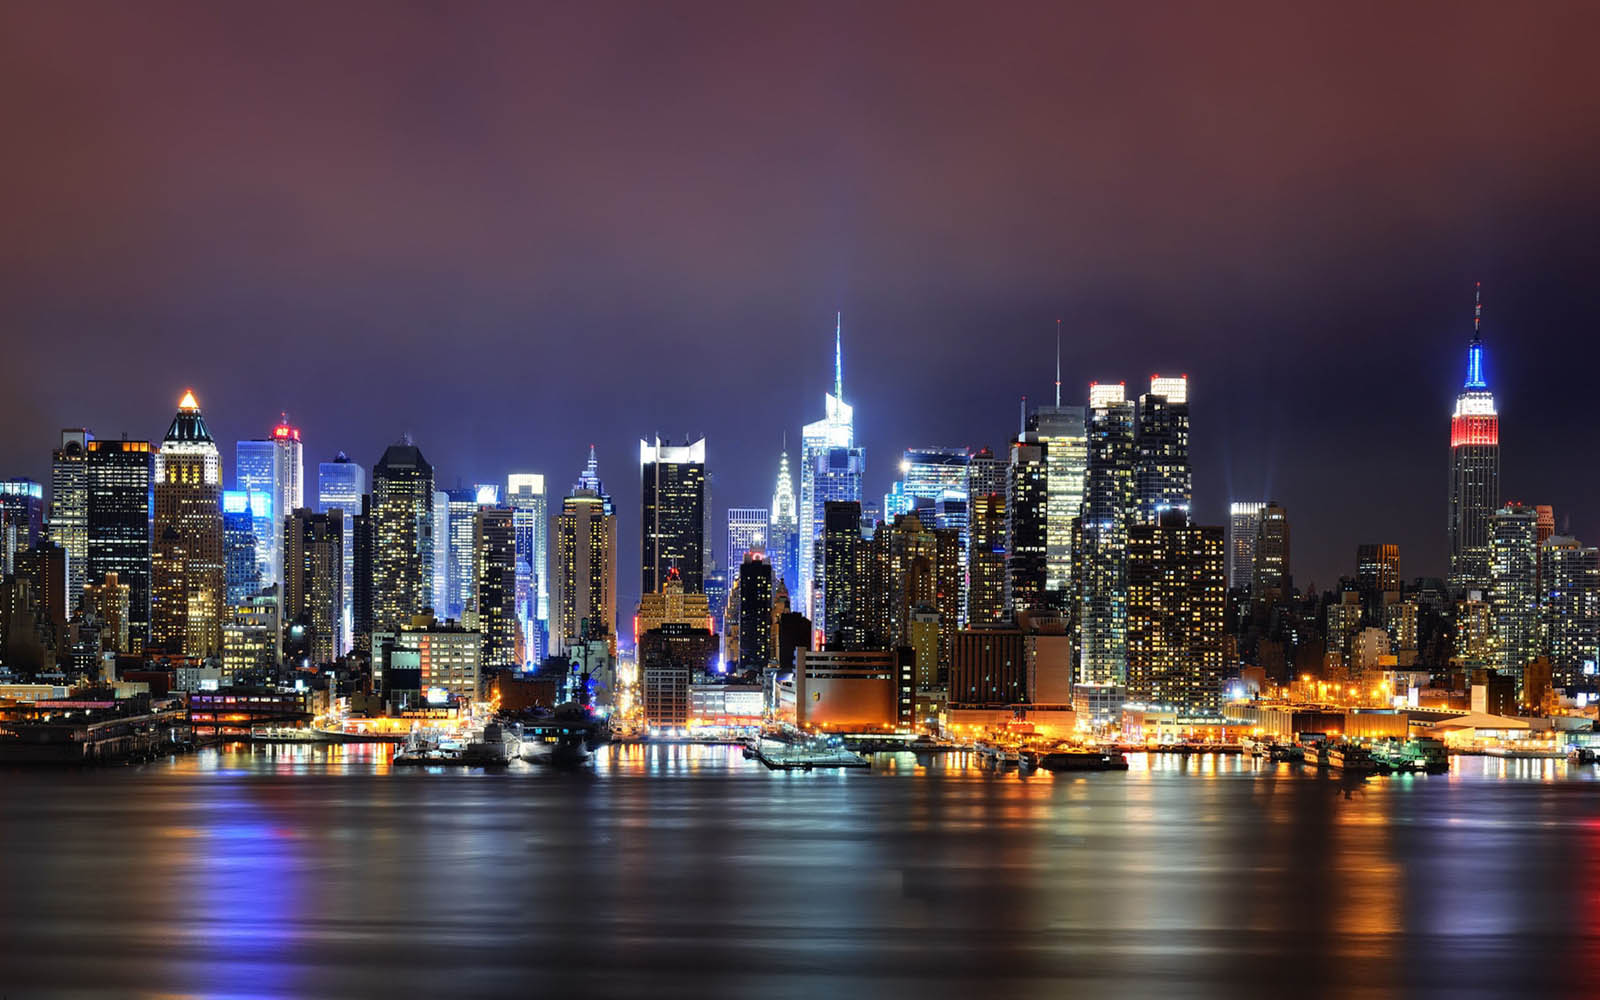 Night City Glow Wallpapers Images Photos Pictures and Backgrounds 1600x1000